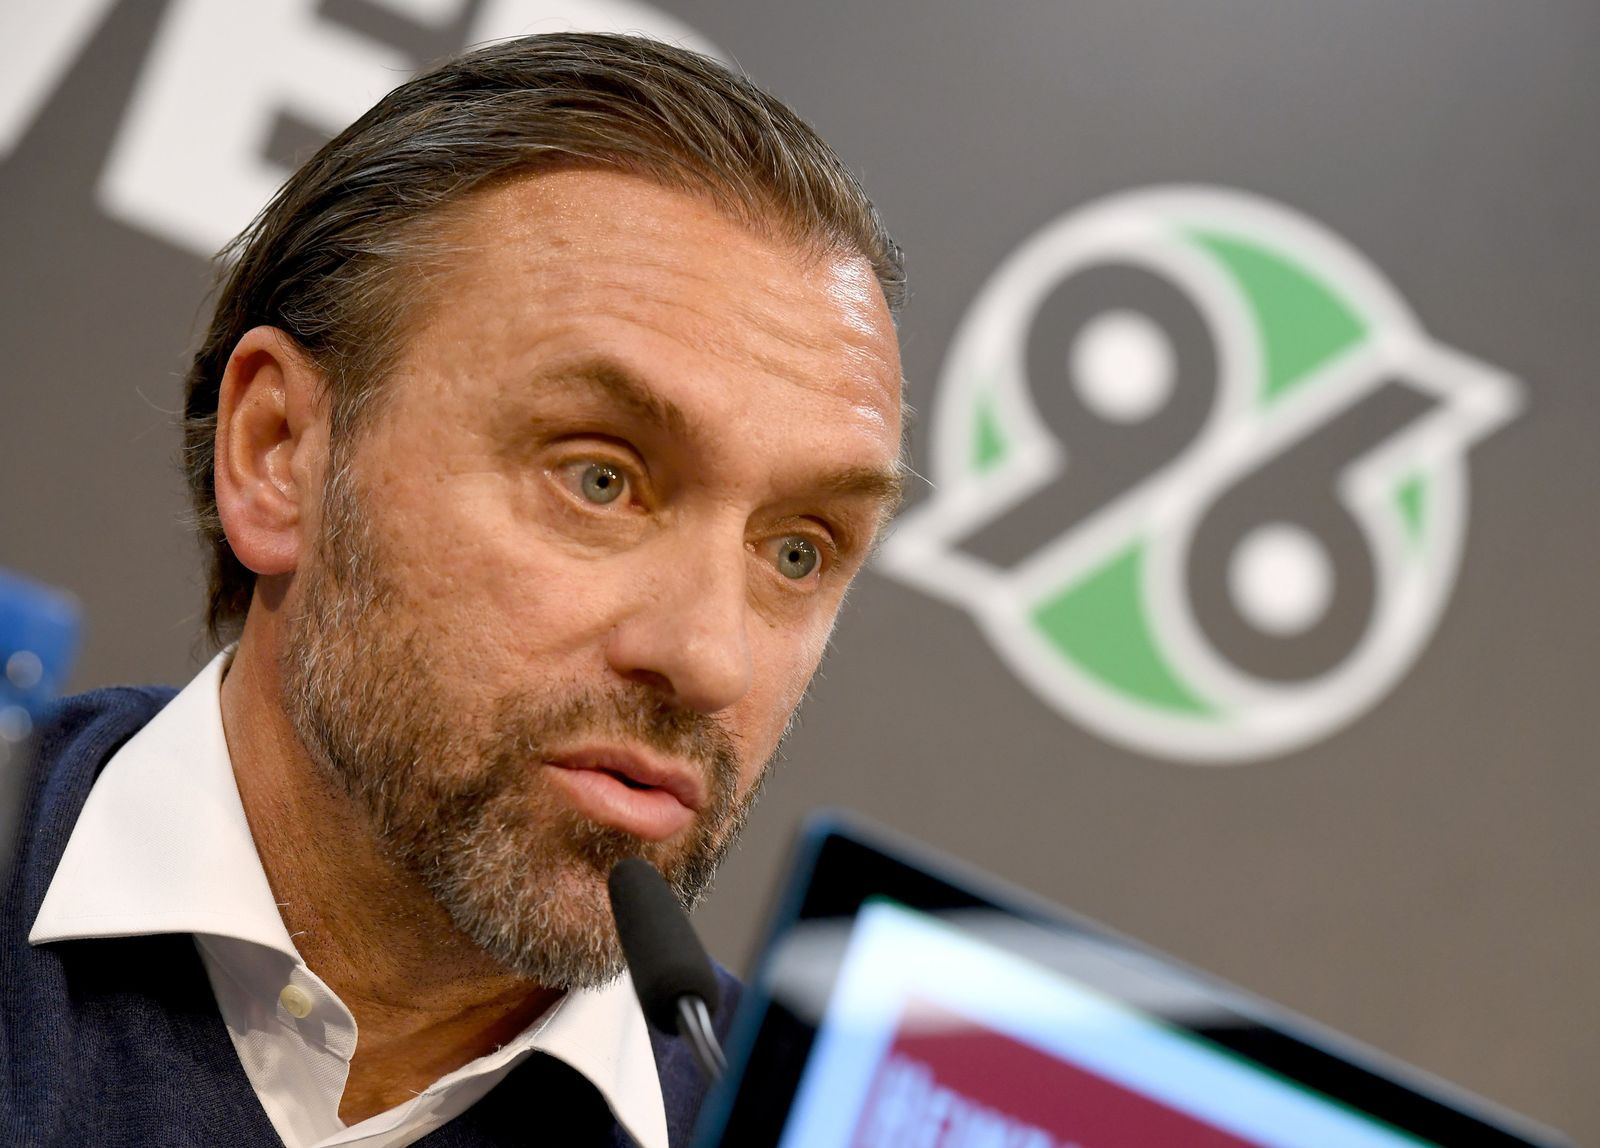 Neuer Trainer Thomas Doll bei Hannover 96